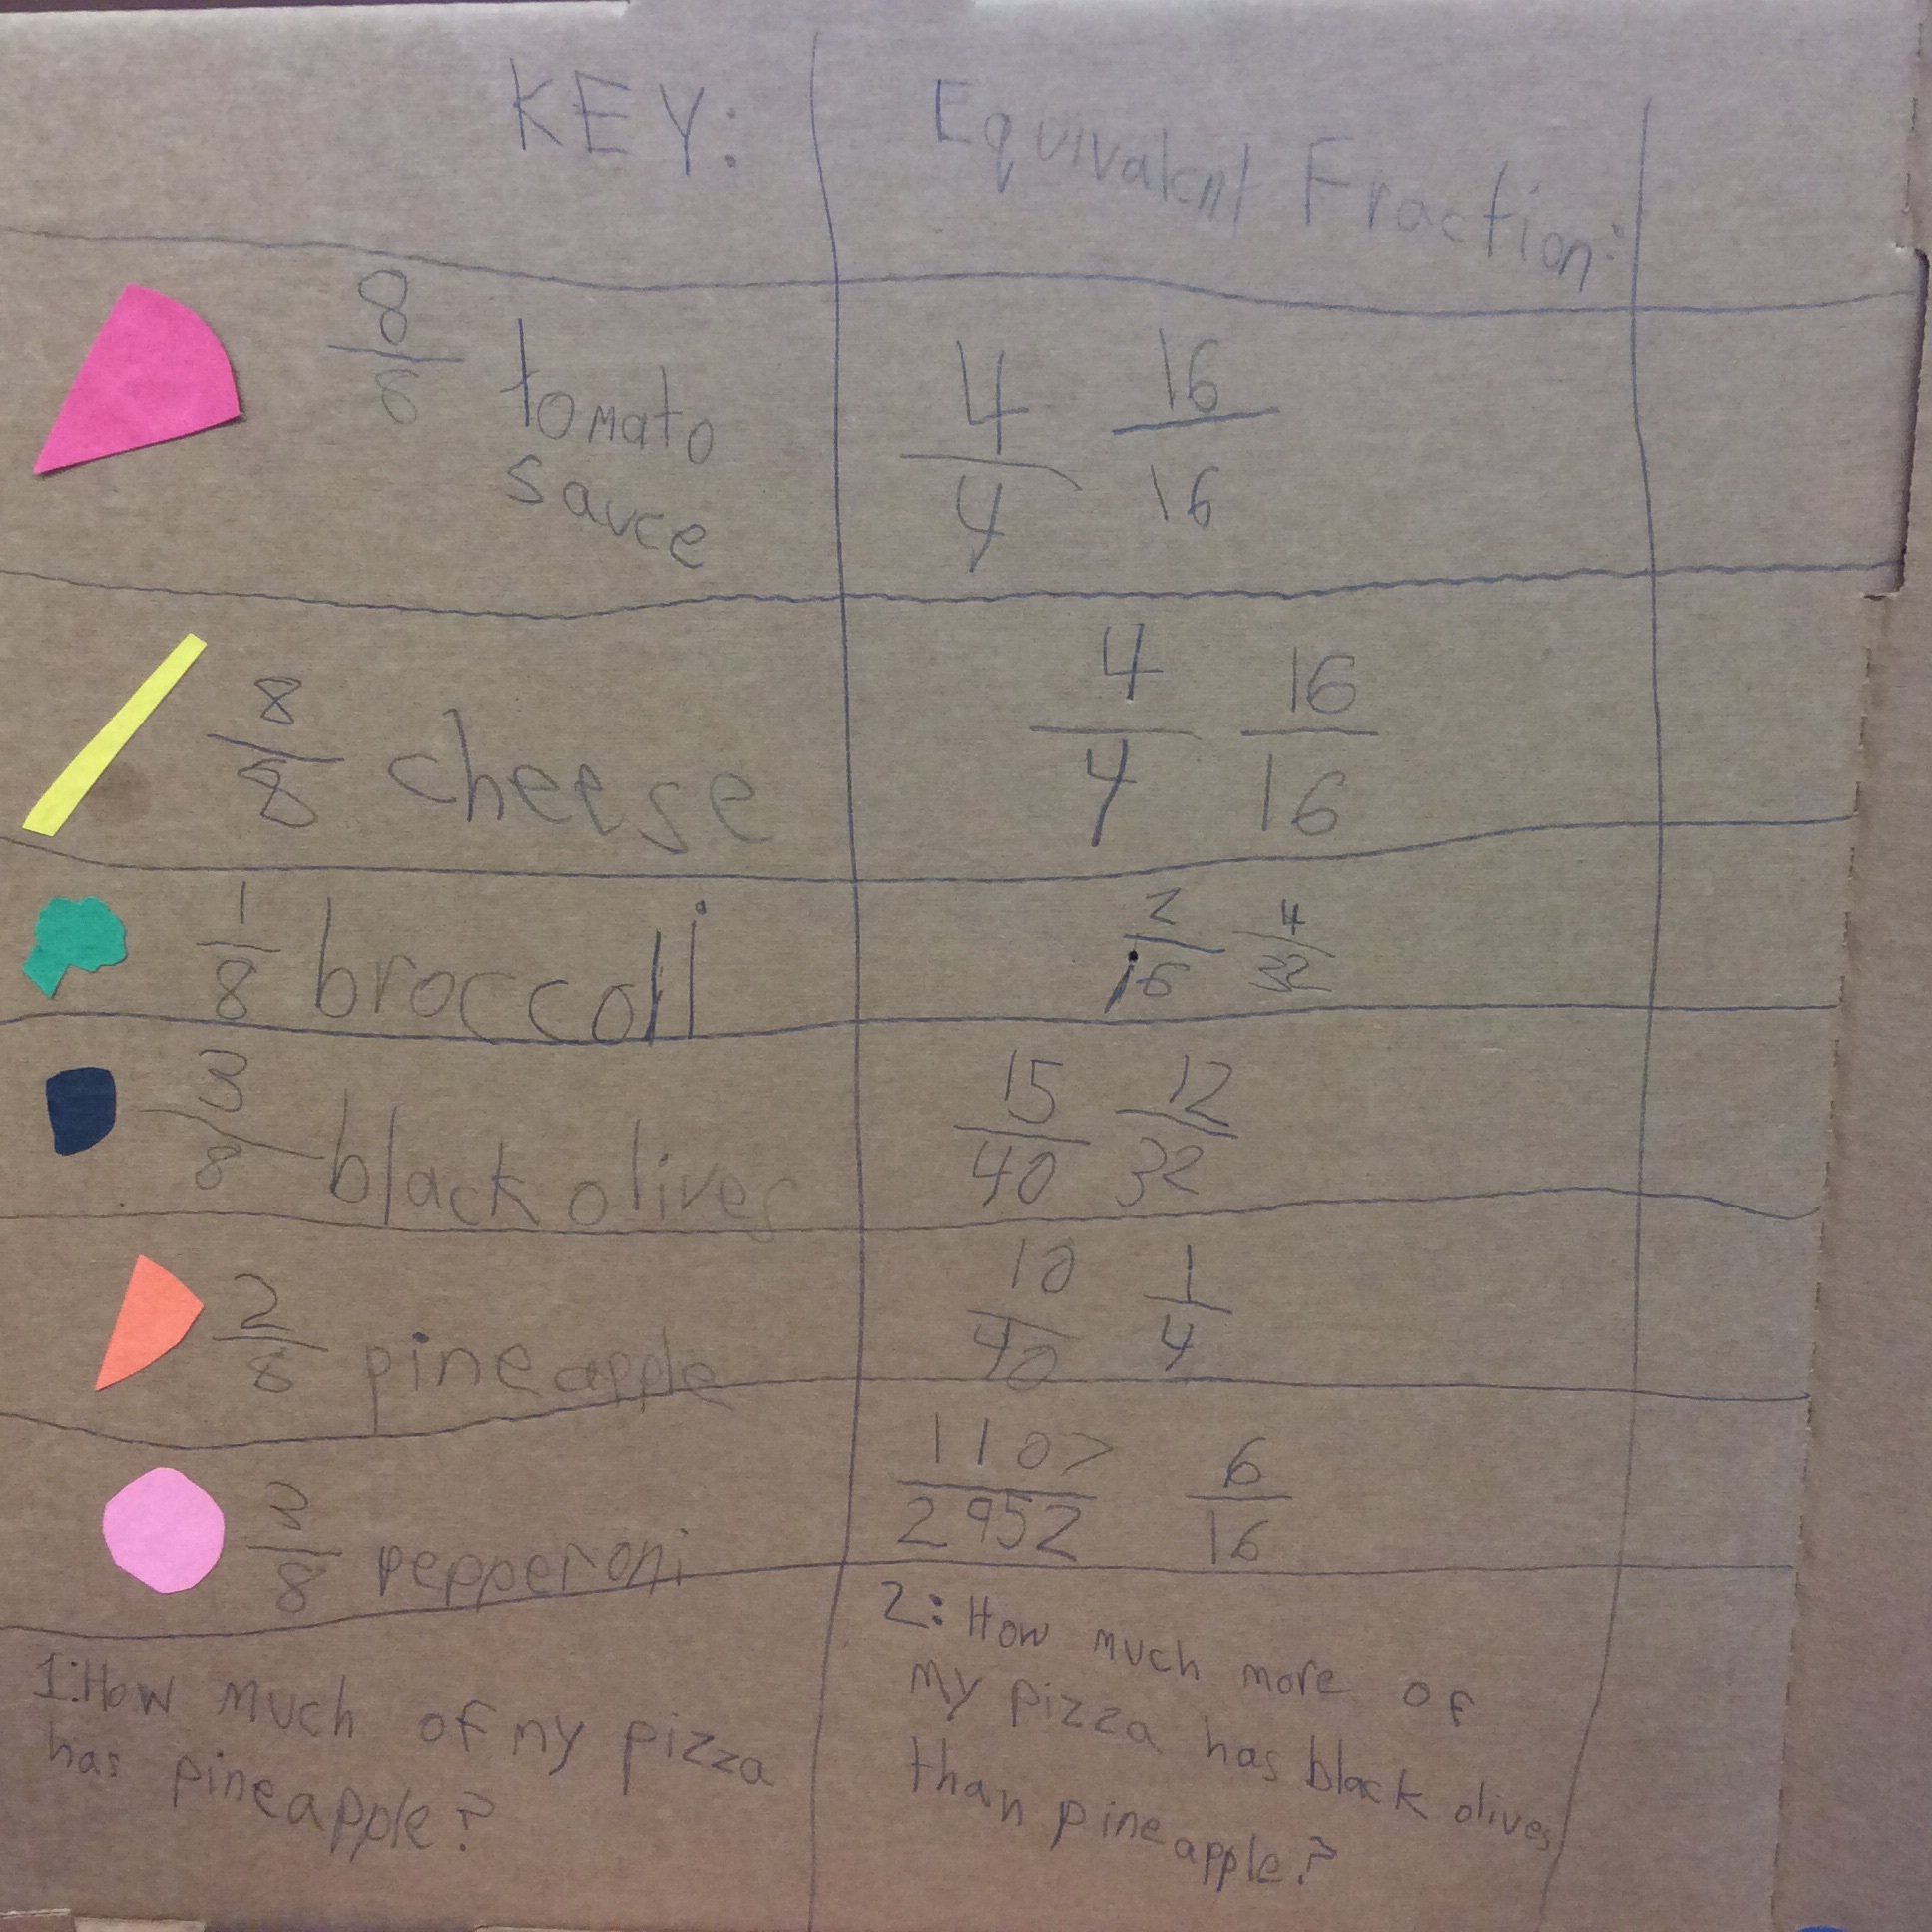 The students created a key to represent their toppings and questions to pose.